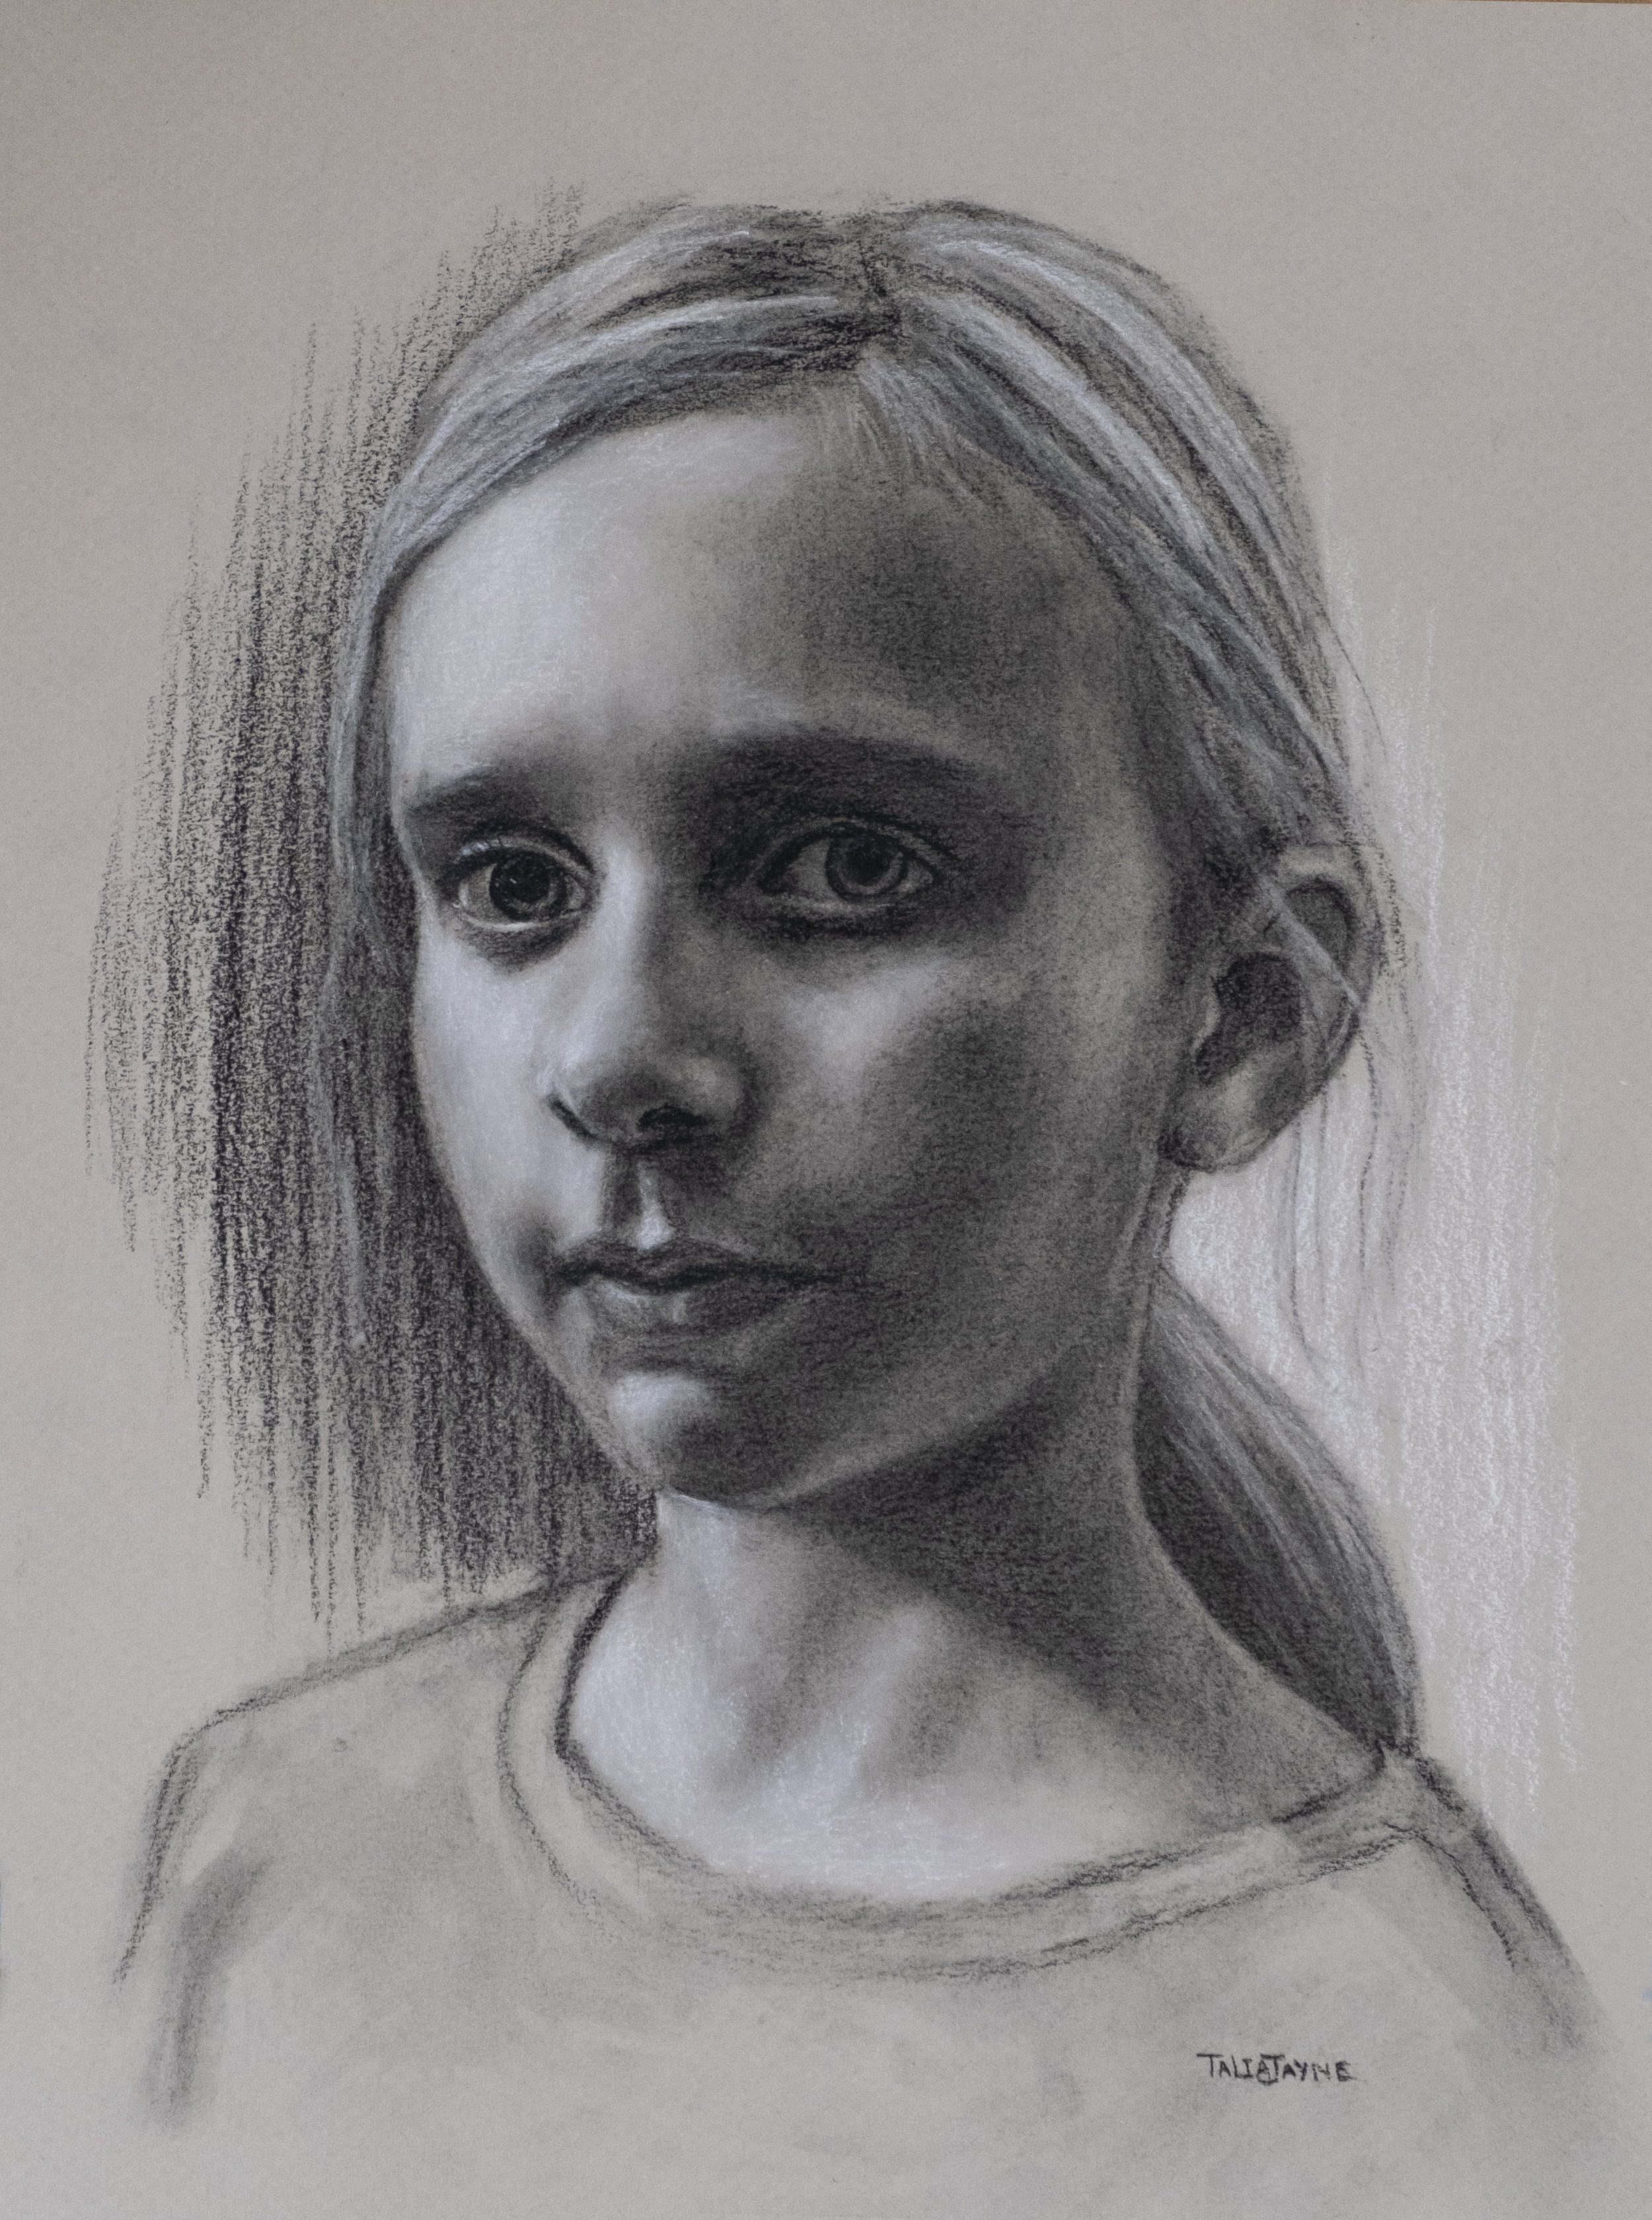 Charcoal and White chalk portrait drawing on toned paper.